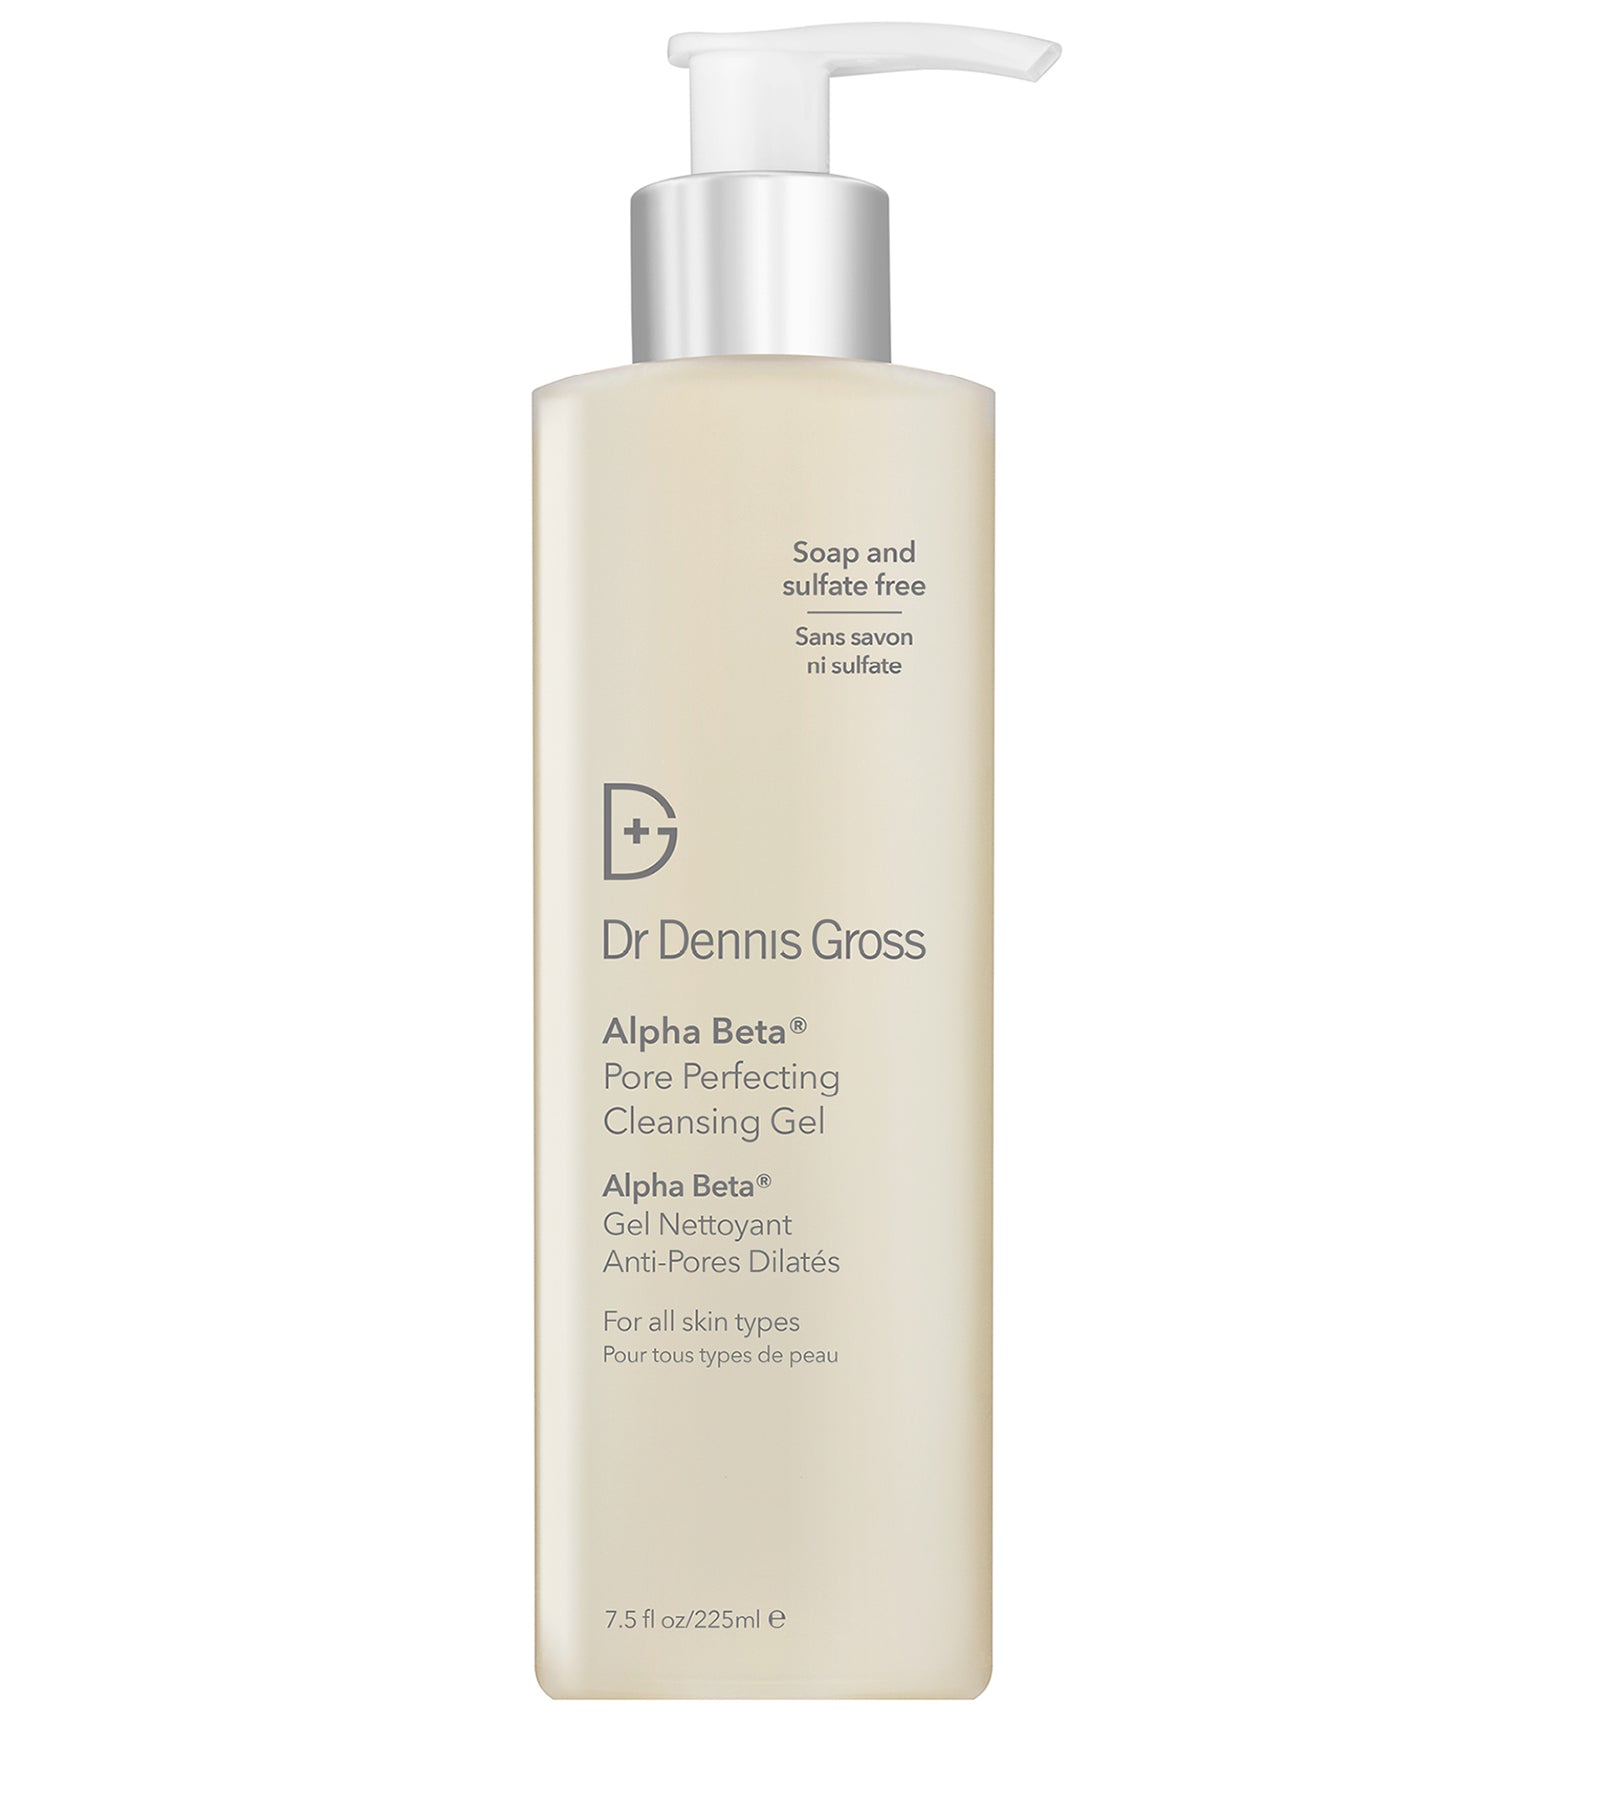 Alpha Beta® Pore Perfecting Cleansing Gel  dr Dennis gross exfoliering rengöring gel acne